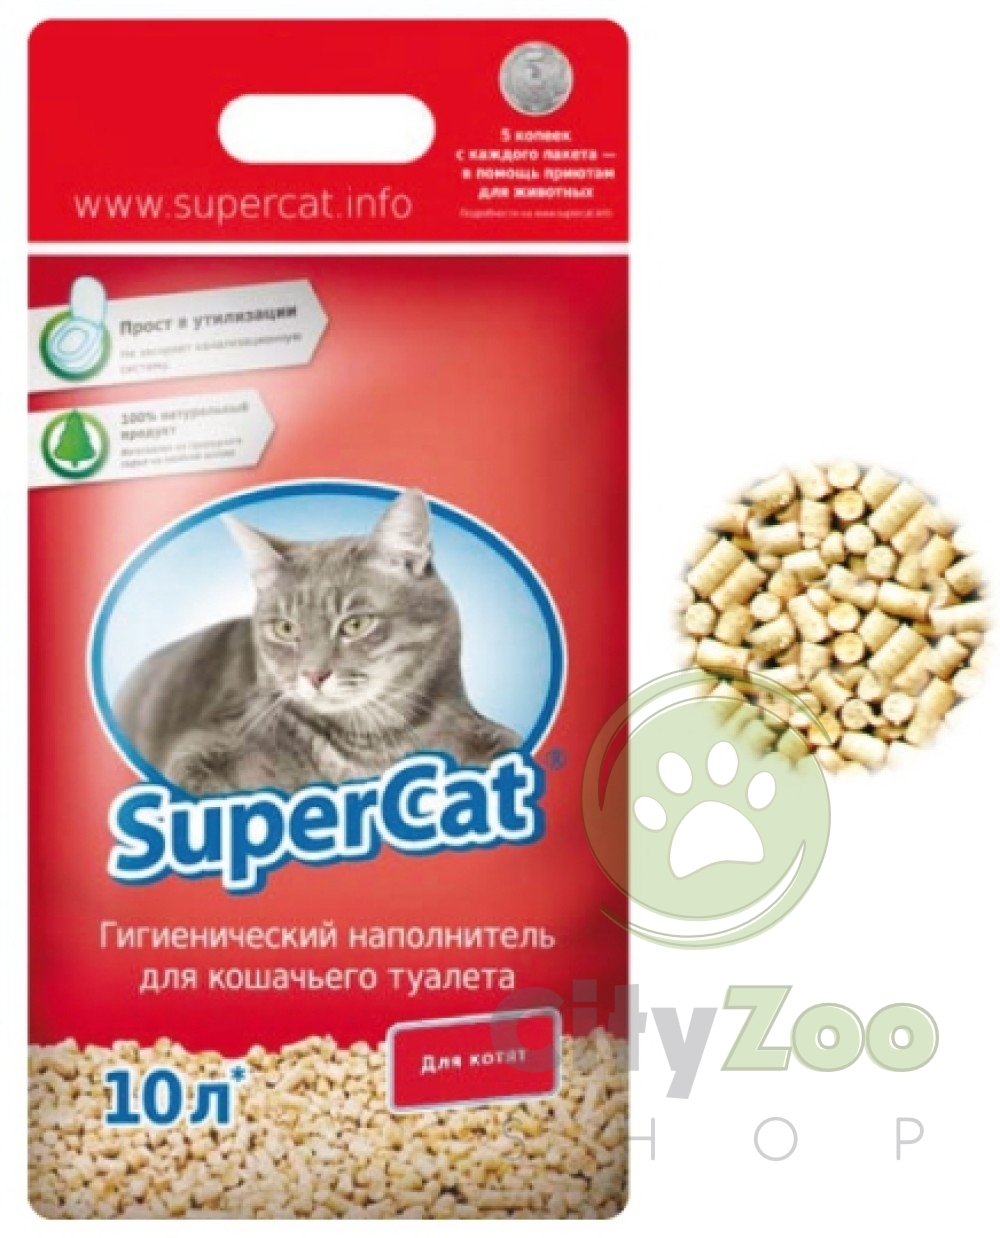 zoo/Super_Cat_Dlja_kotjat_i_priveredlivih_koshek_bez_aromata